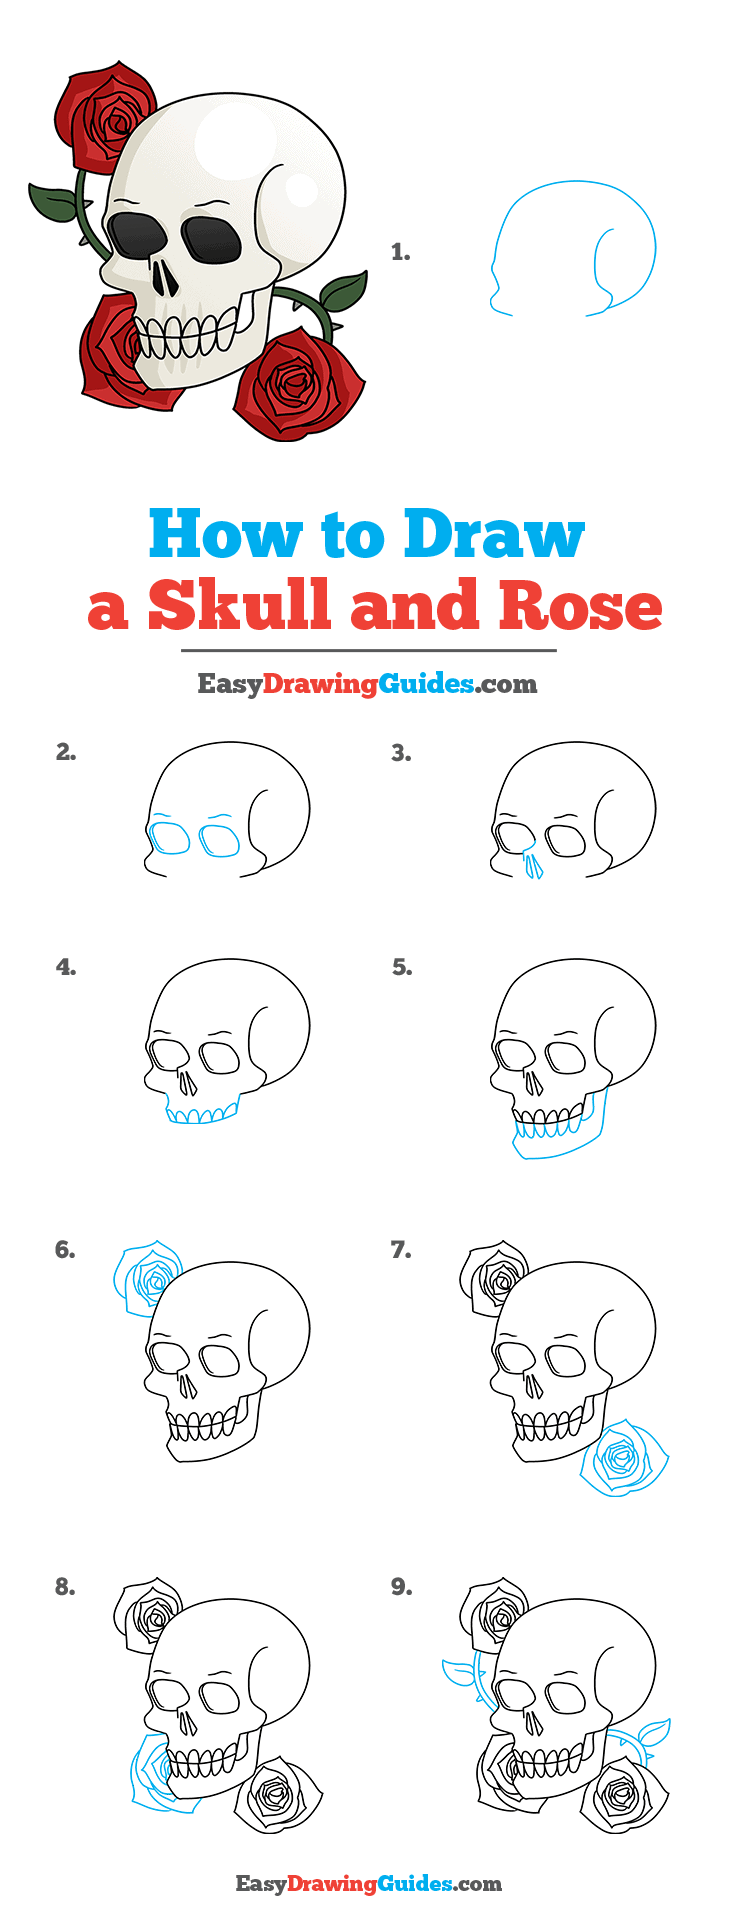 How to Draw Skull and Rose